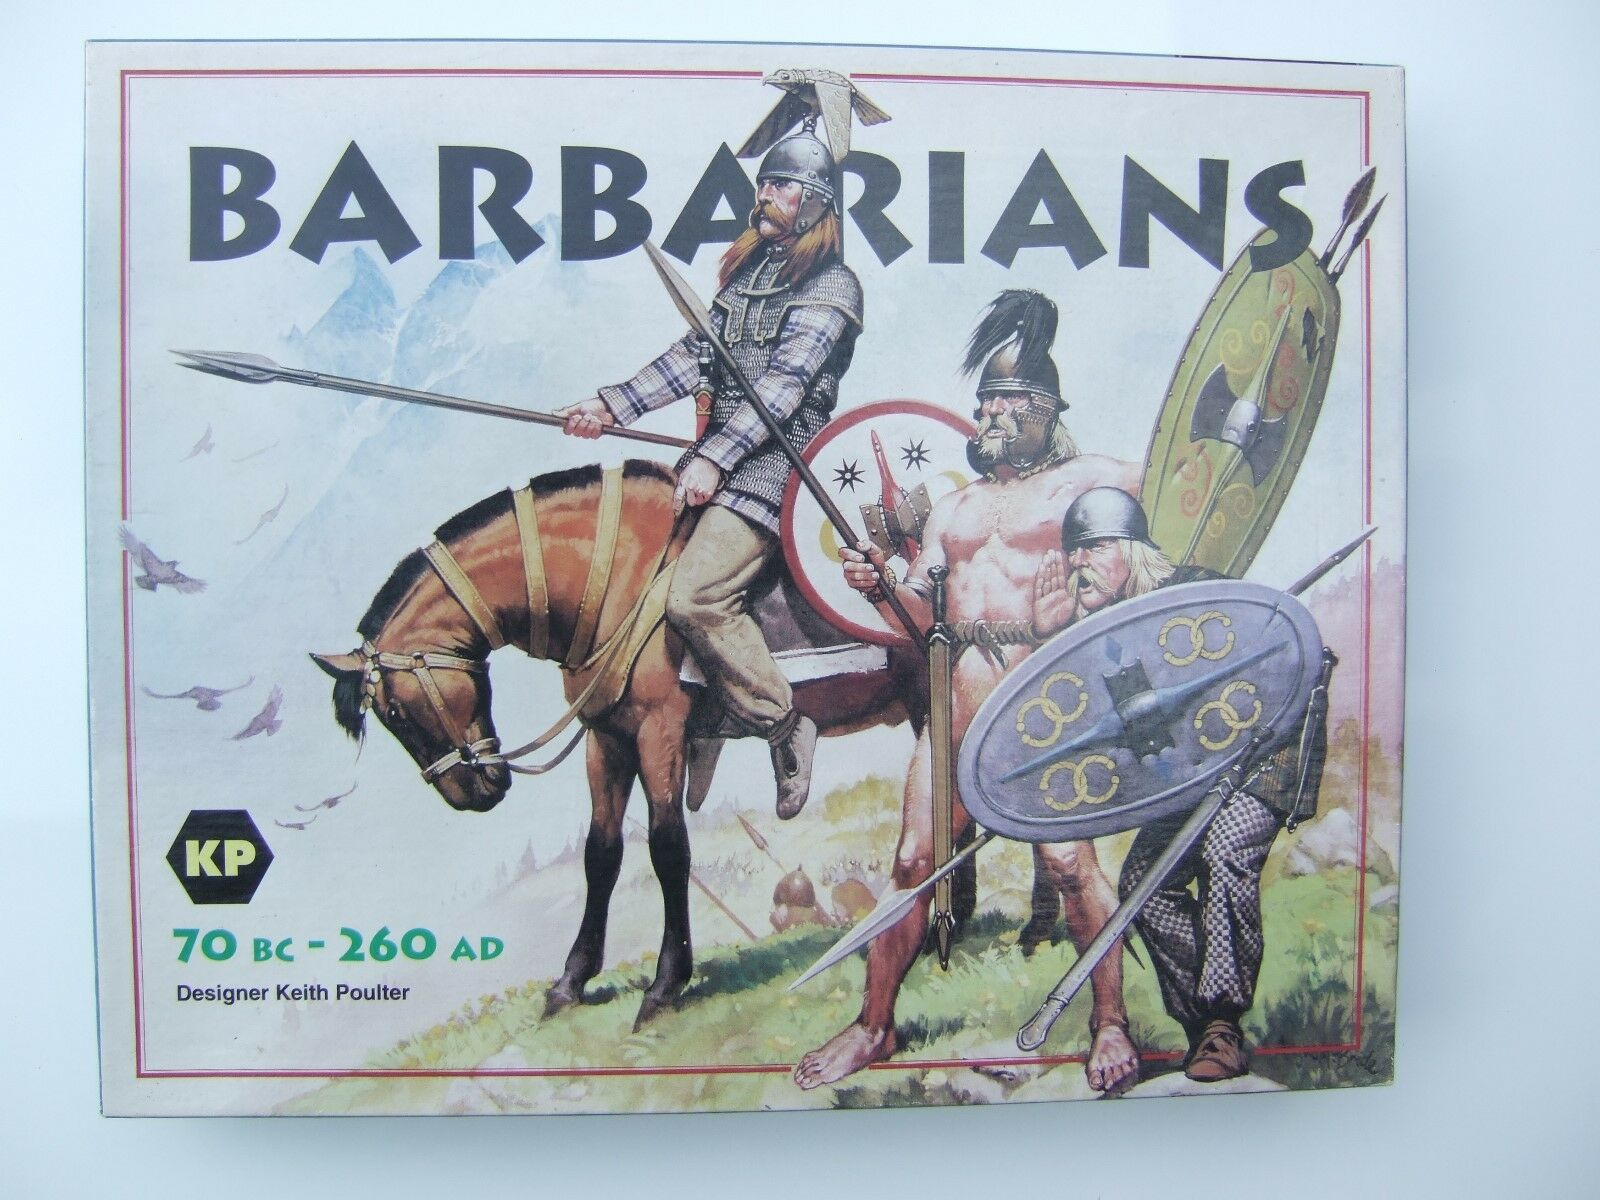 Barbarians (70 BC - 260 AD) by KP (Designer Keith Poulter)